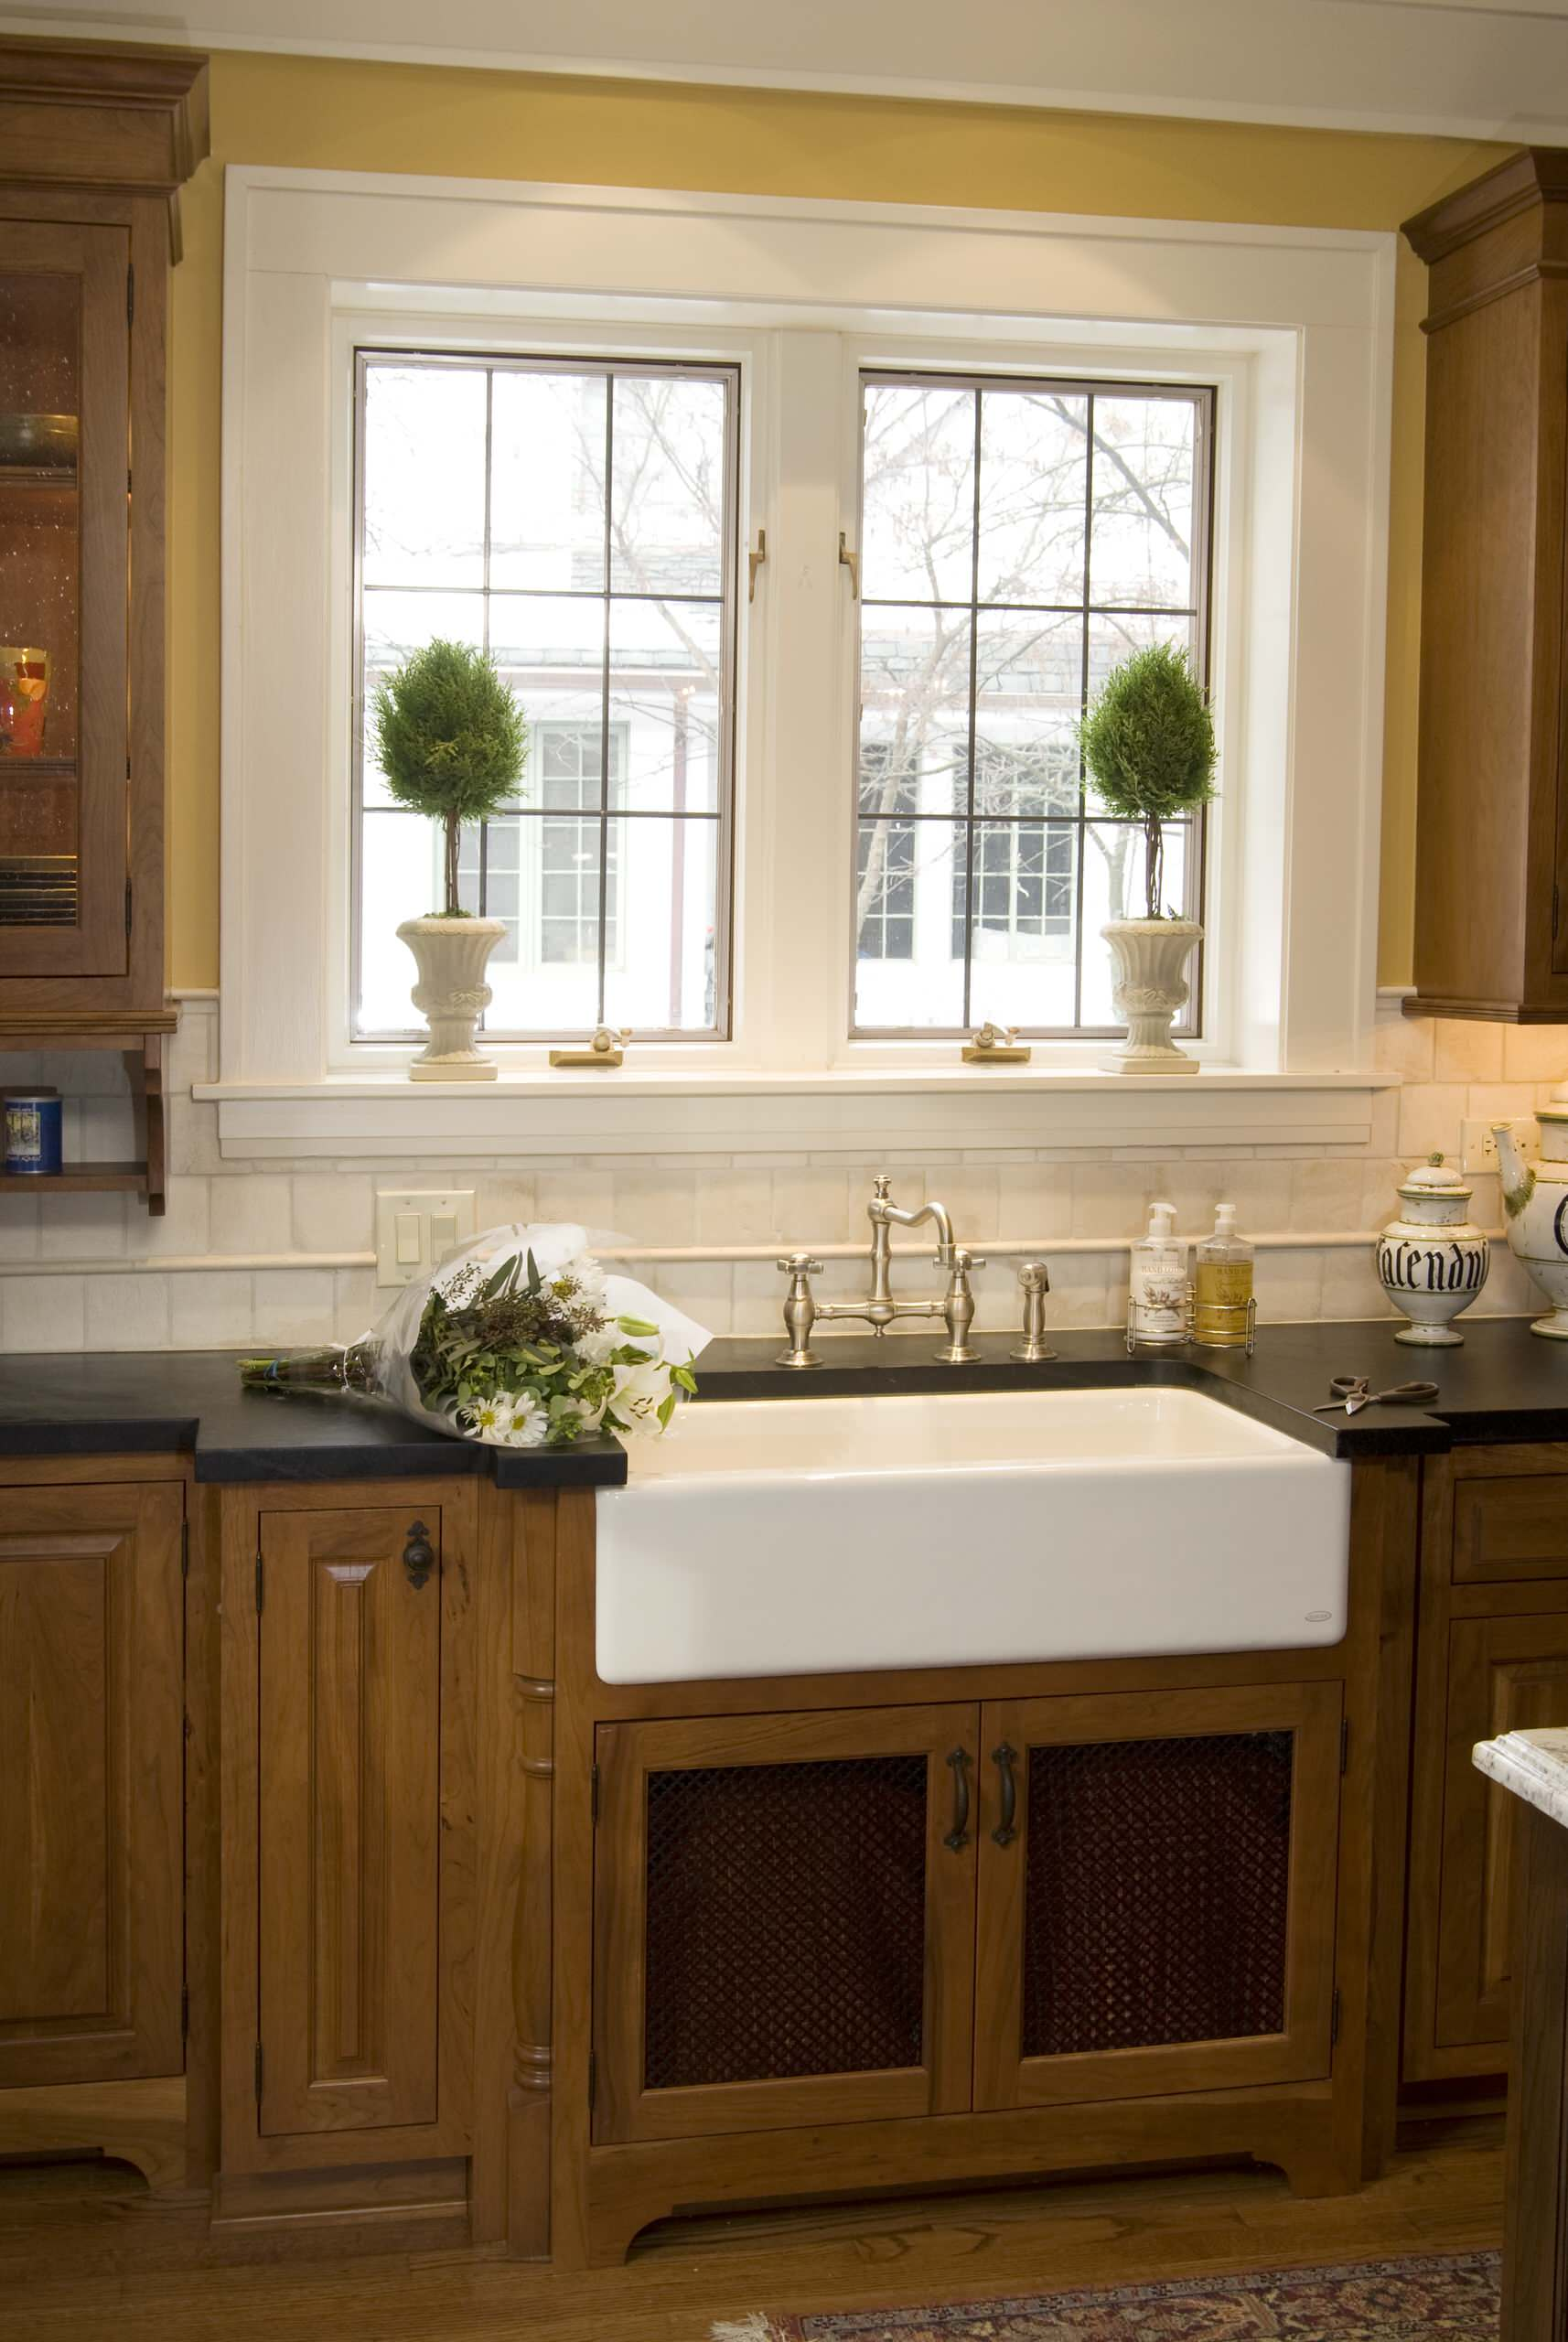 Kitchen Window Sill Houzz